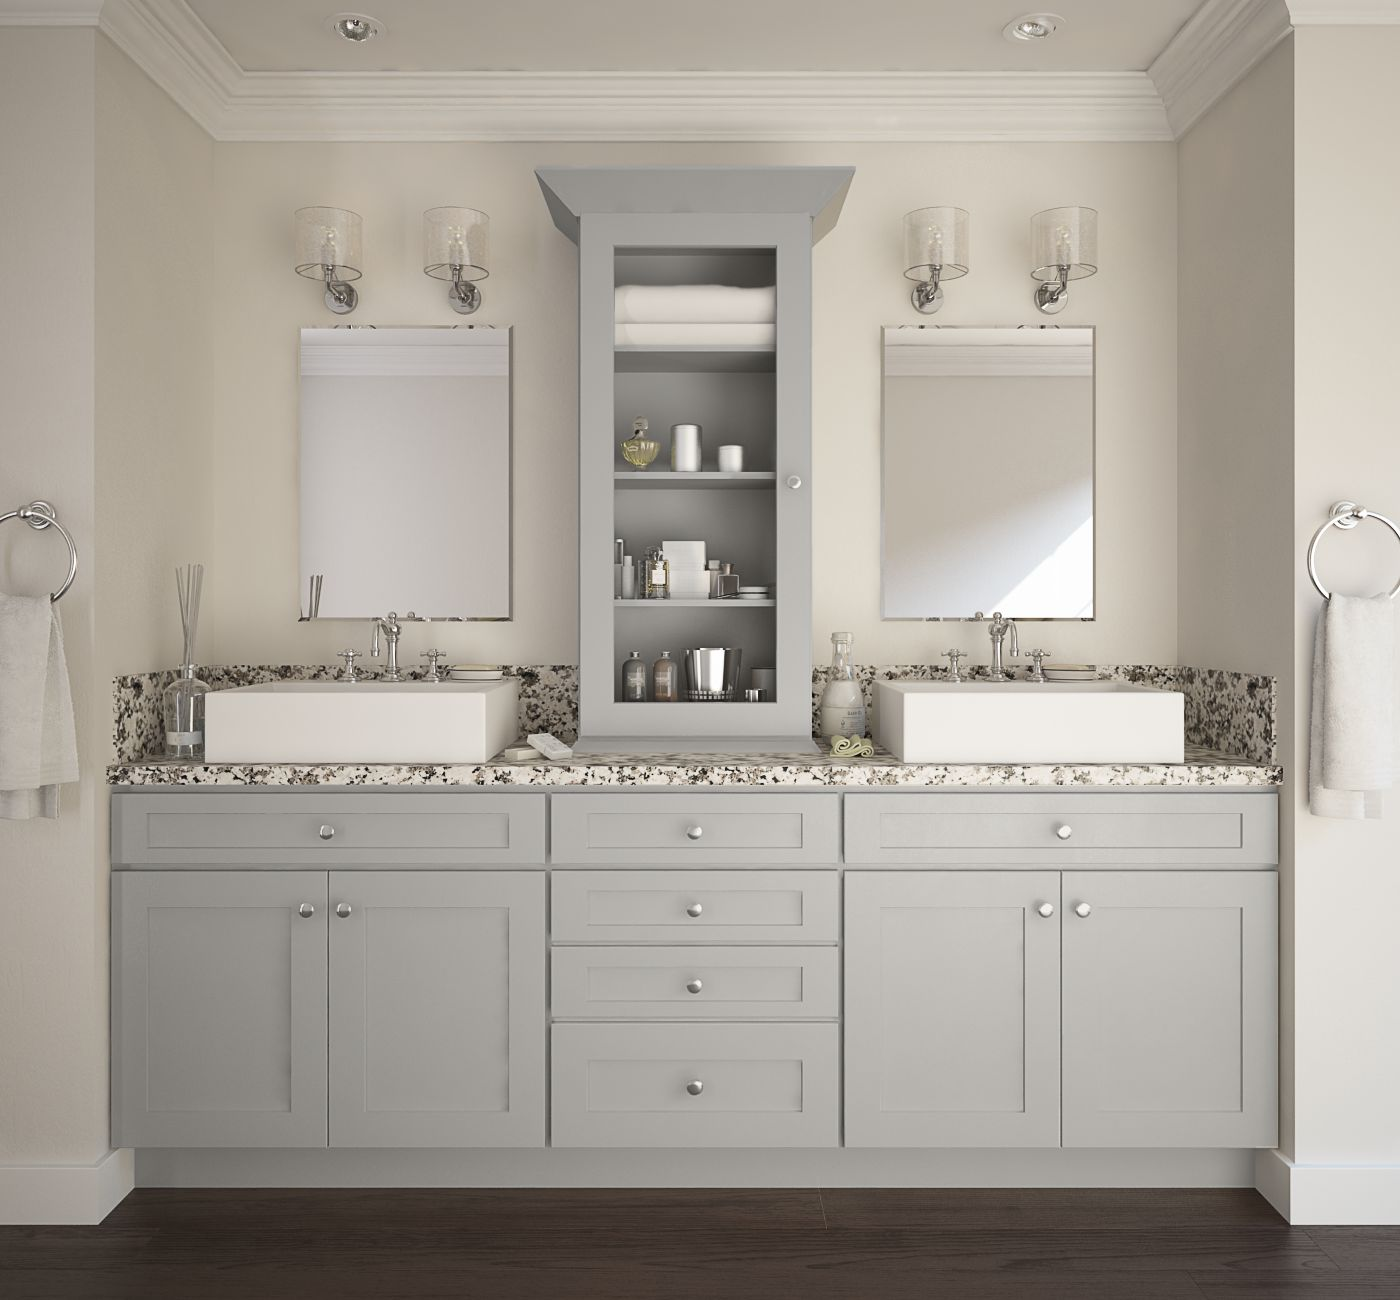 Society shaker dove gray bathroom vanities vanities for Bathroom cabinet designs photos